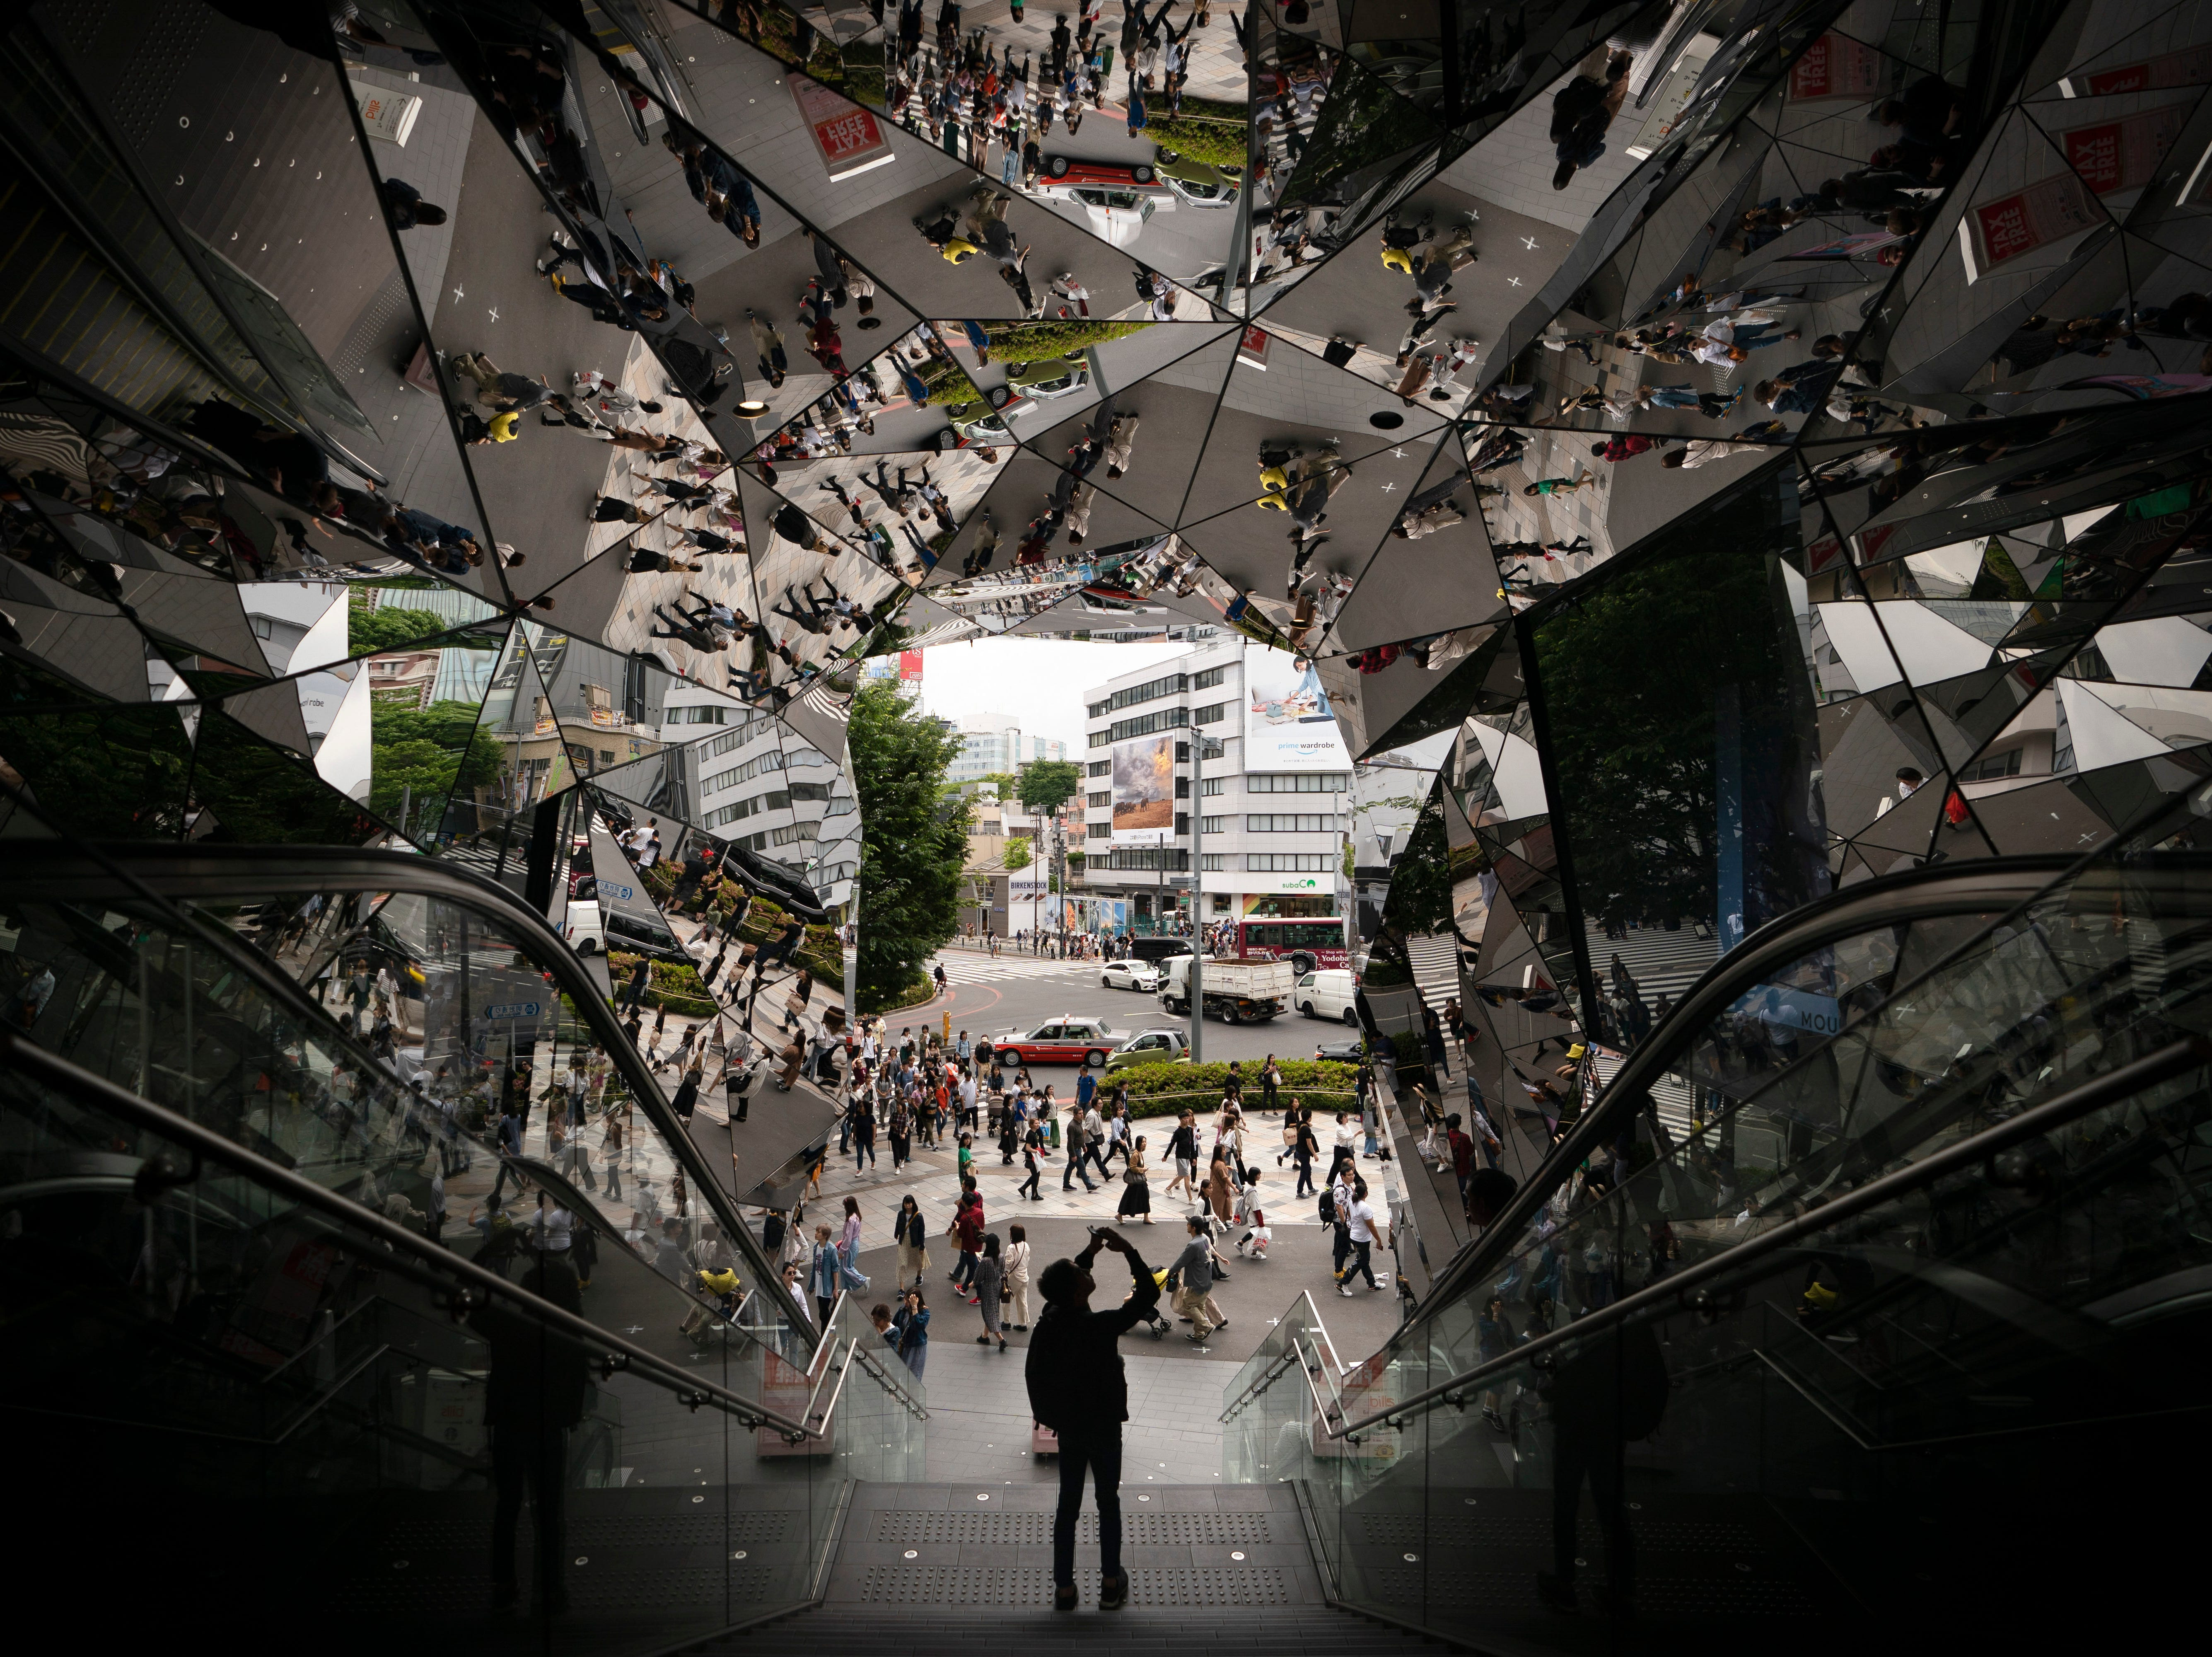 A tourist takes pictures in the entrance way to a shopping mall decorated with mirrors Saturday, May 18, 2019, in Harajuku district of Tokyo.